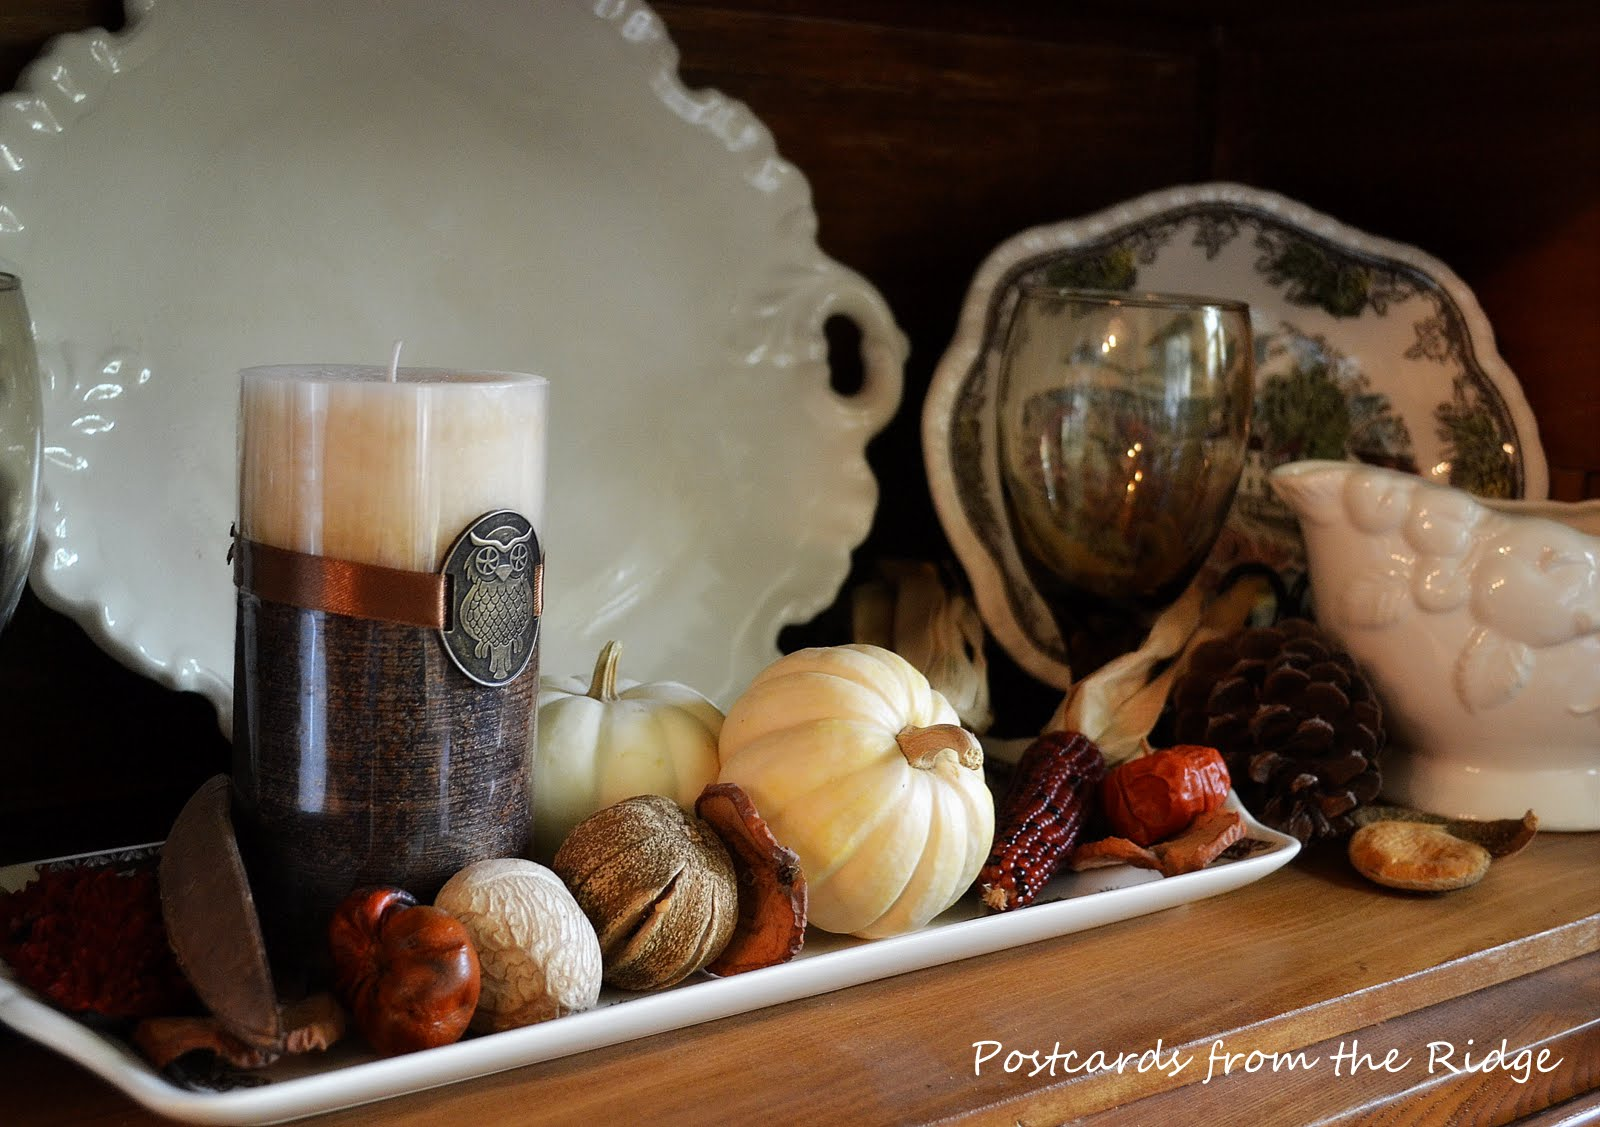 Love the dried pods! Lots of great ideas for using natural, vintage, and farmhouse style decor for fall.